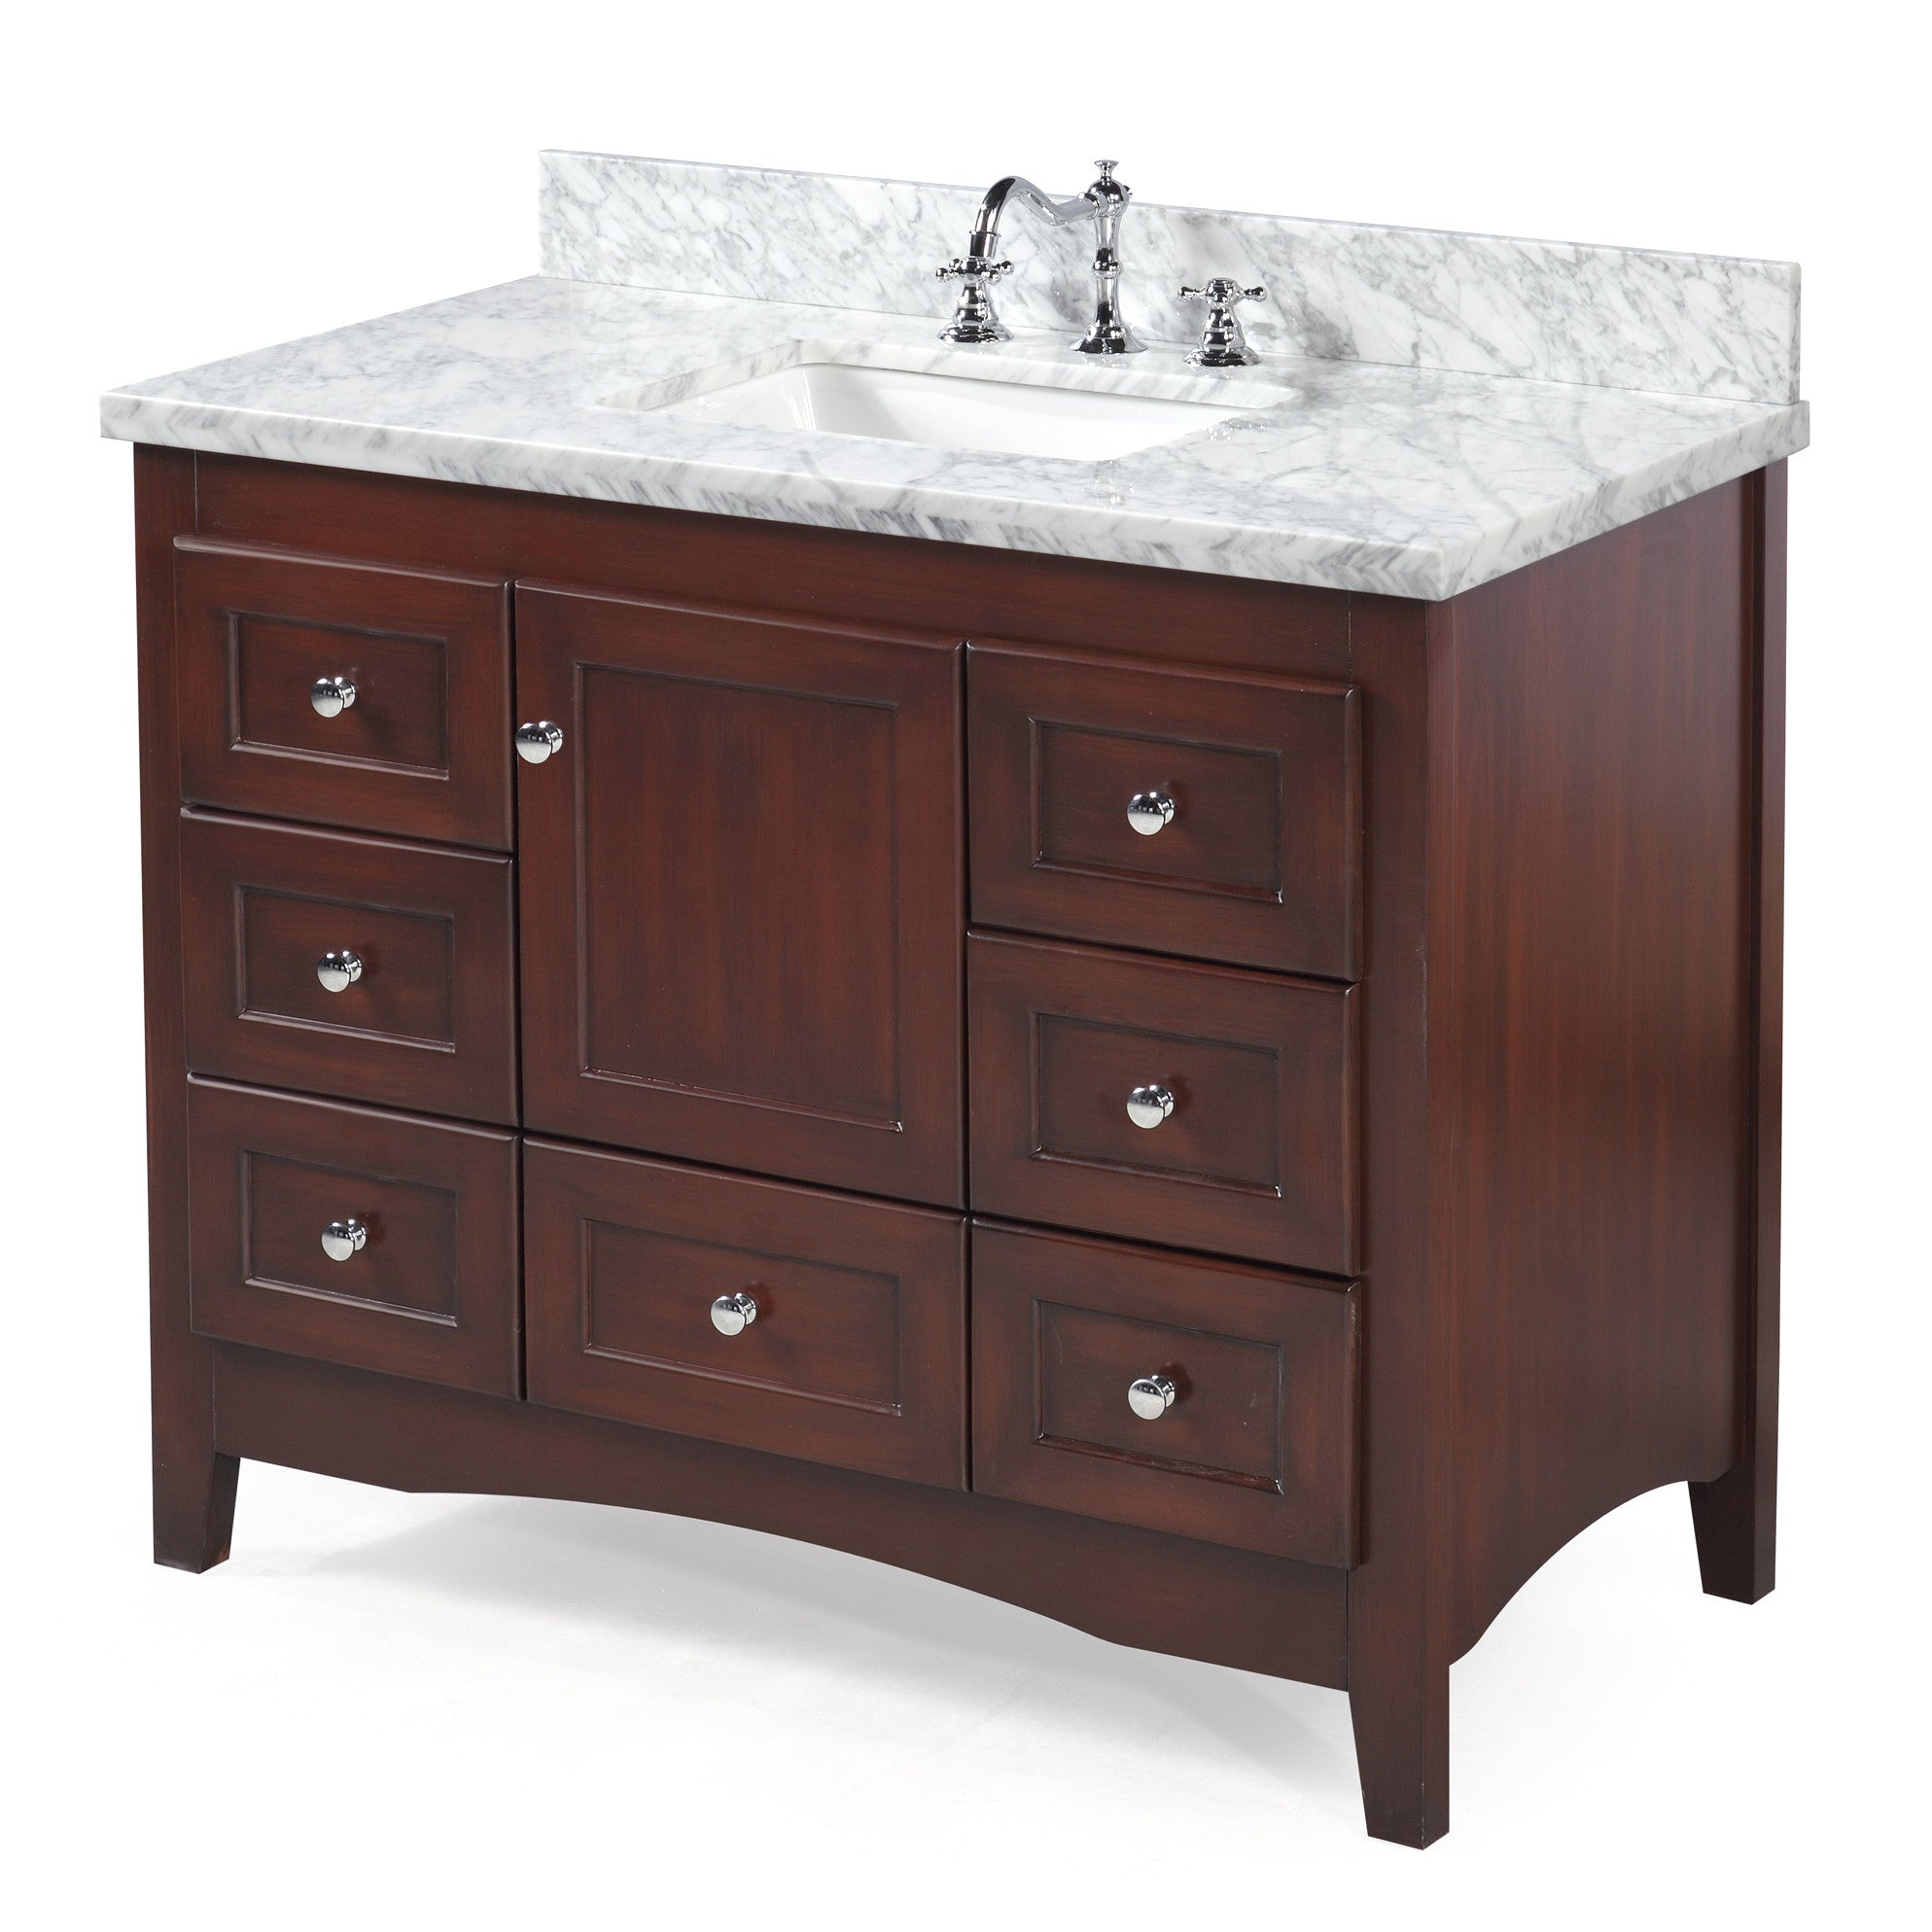 Abbey 42 inch Vanity Carrara Chocolate – KitchenBathCollection